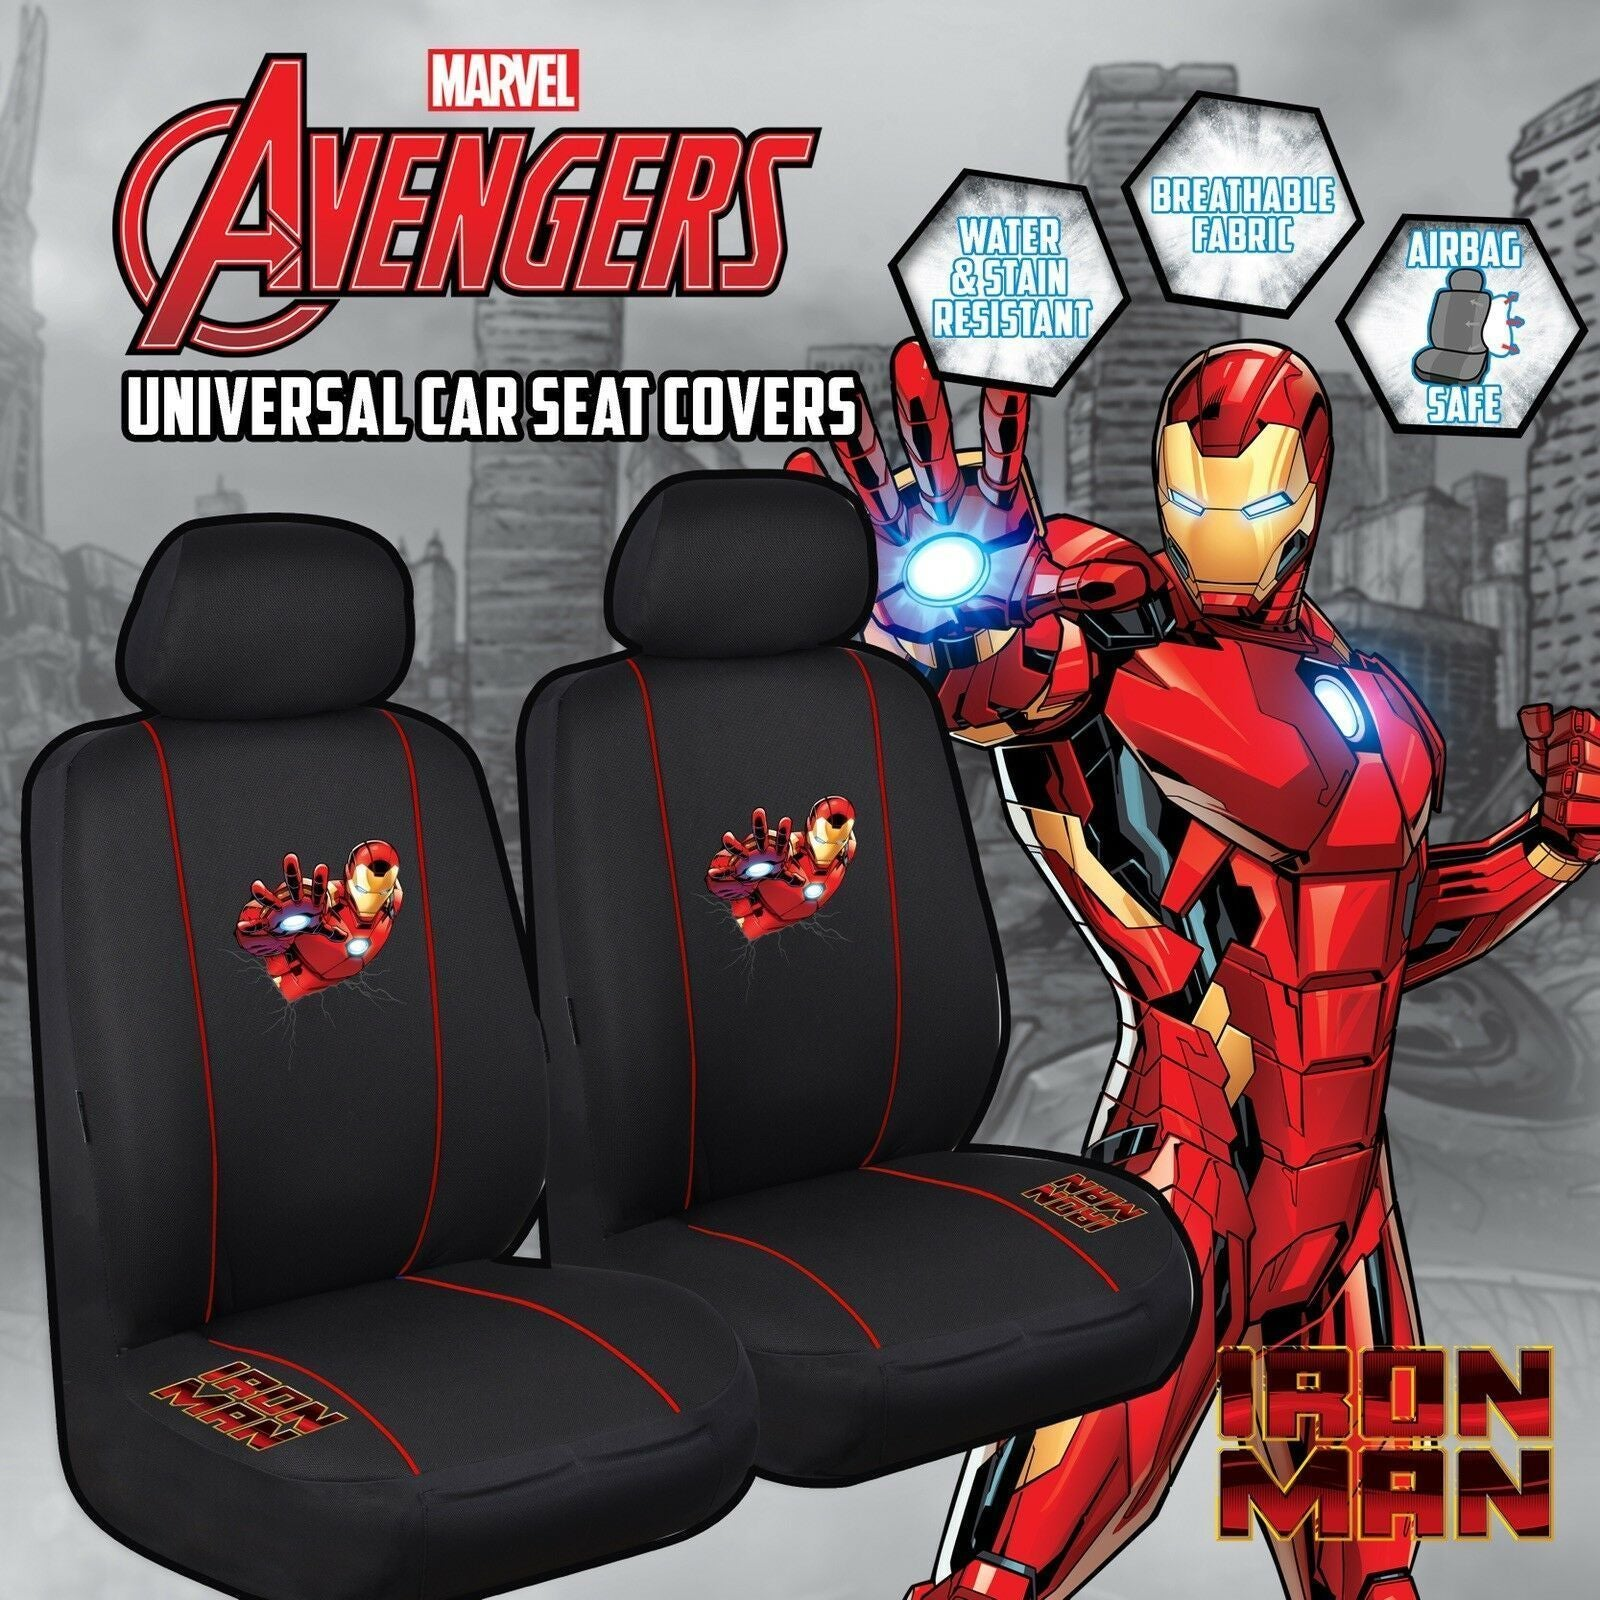 MARVEL AVENGERS Universal 30/35 Car Seat Cover - IRON MAN